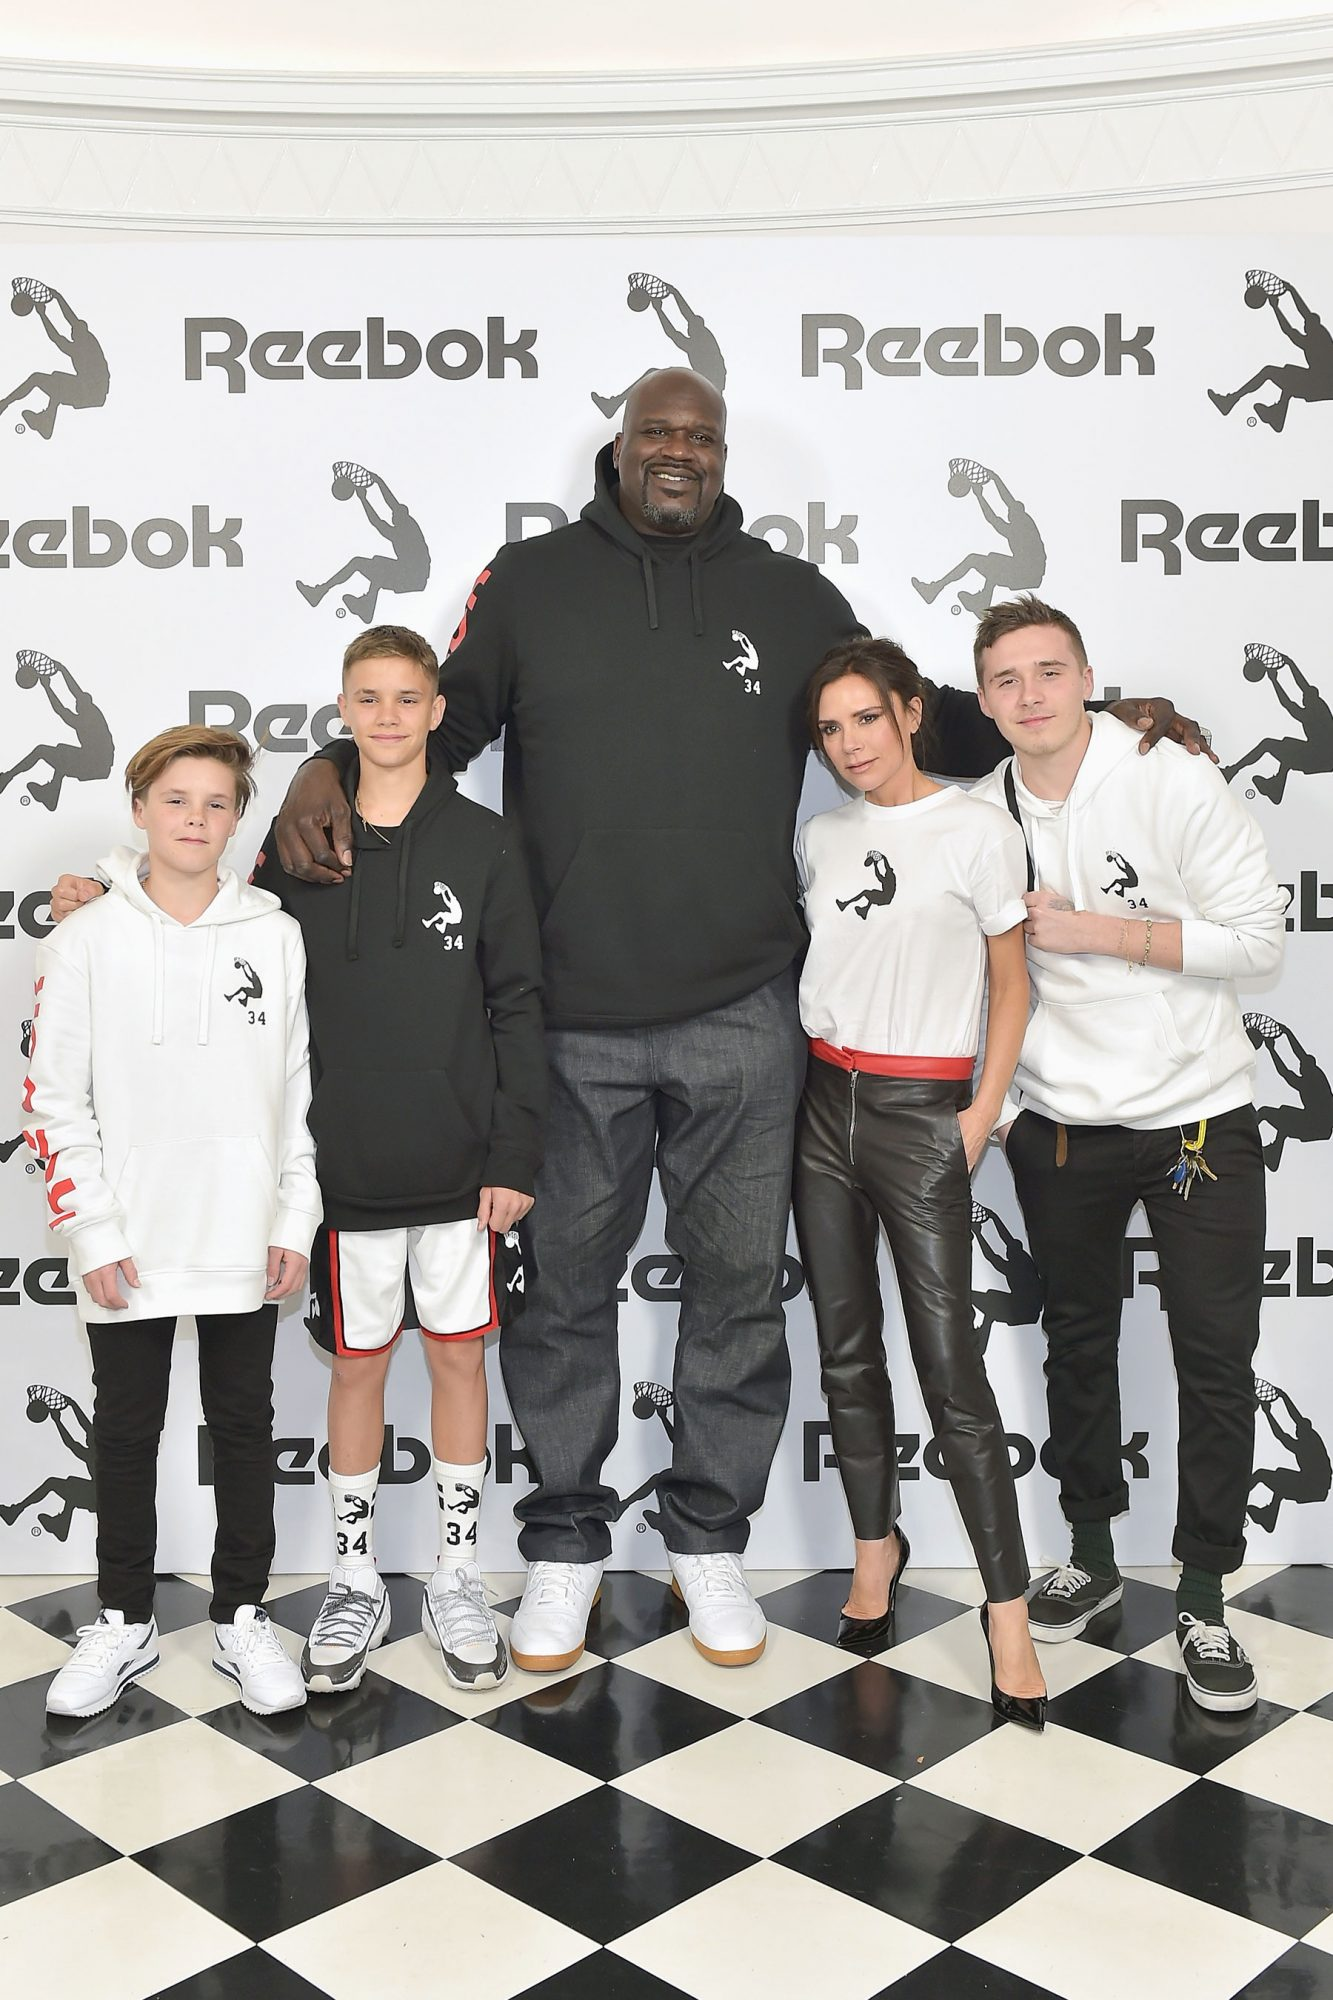 Reebok And Victoria Beckham Celebrate Their Partnership With An Intimate Los Angeles Event. Special Guest Shaquille O'Neal Officially Welcomes Victoria To The Reebok Team